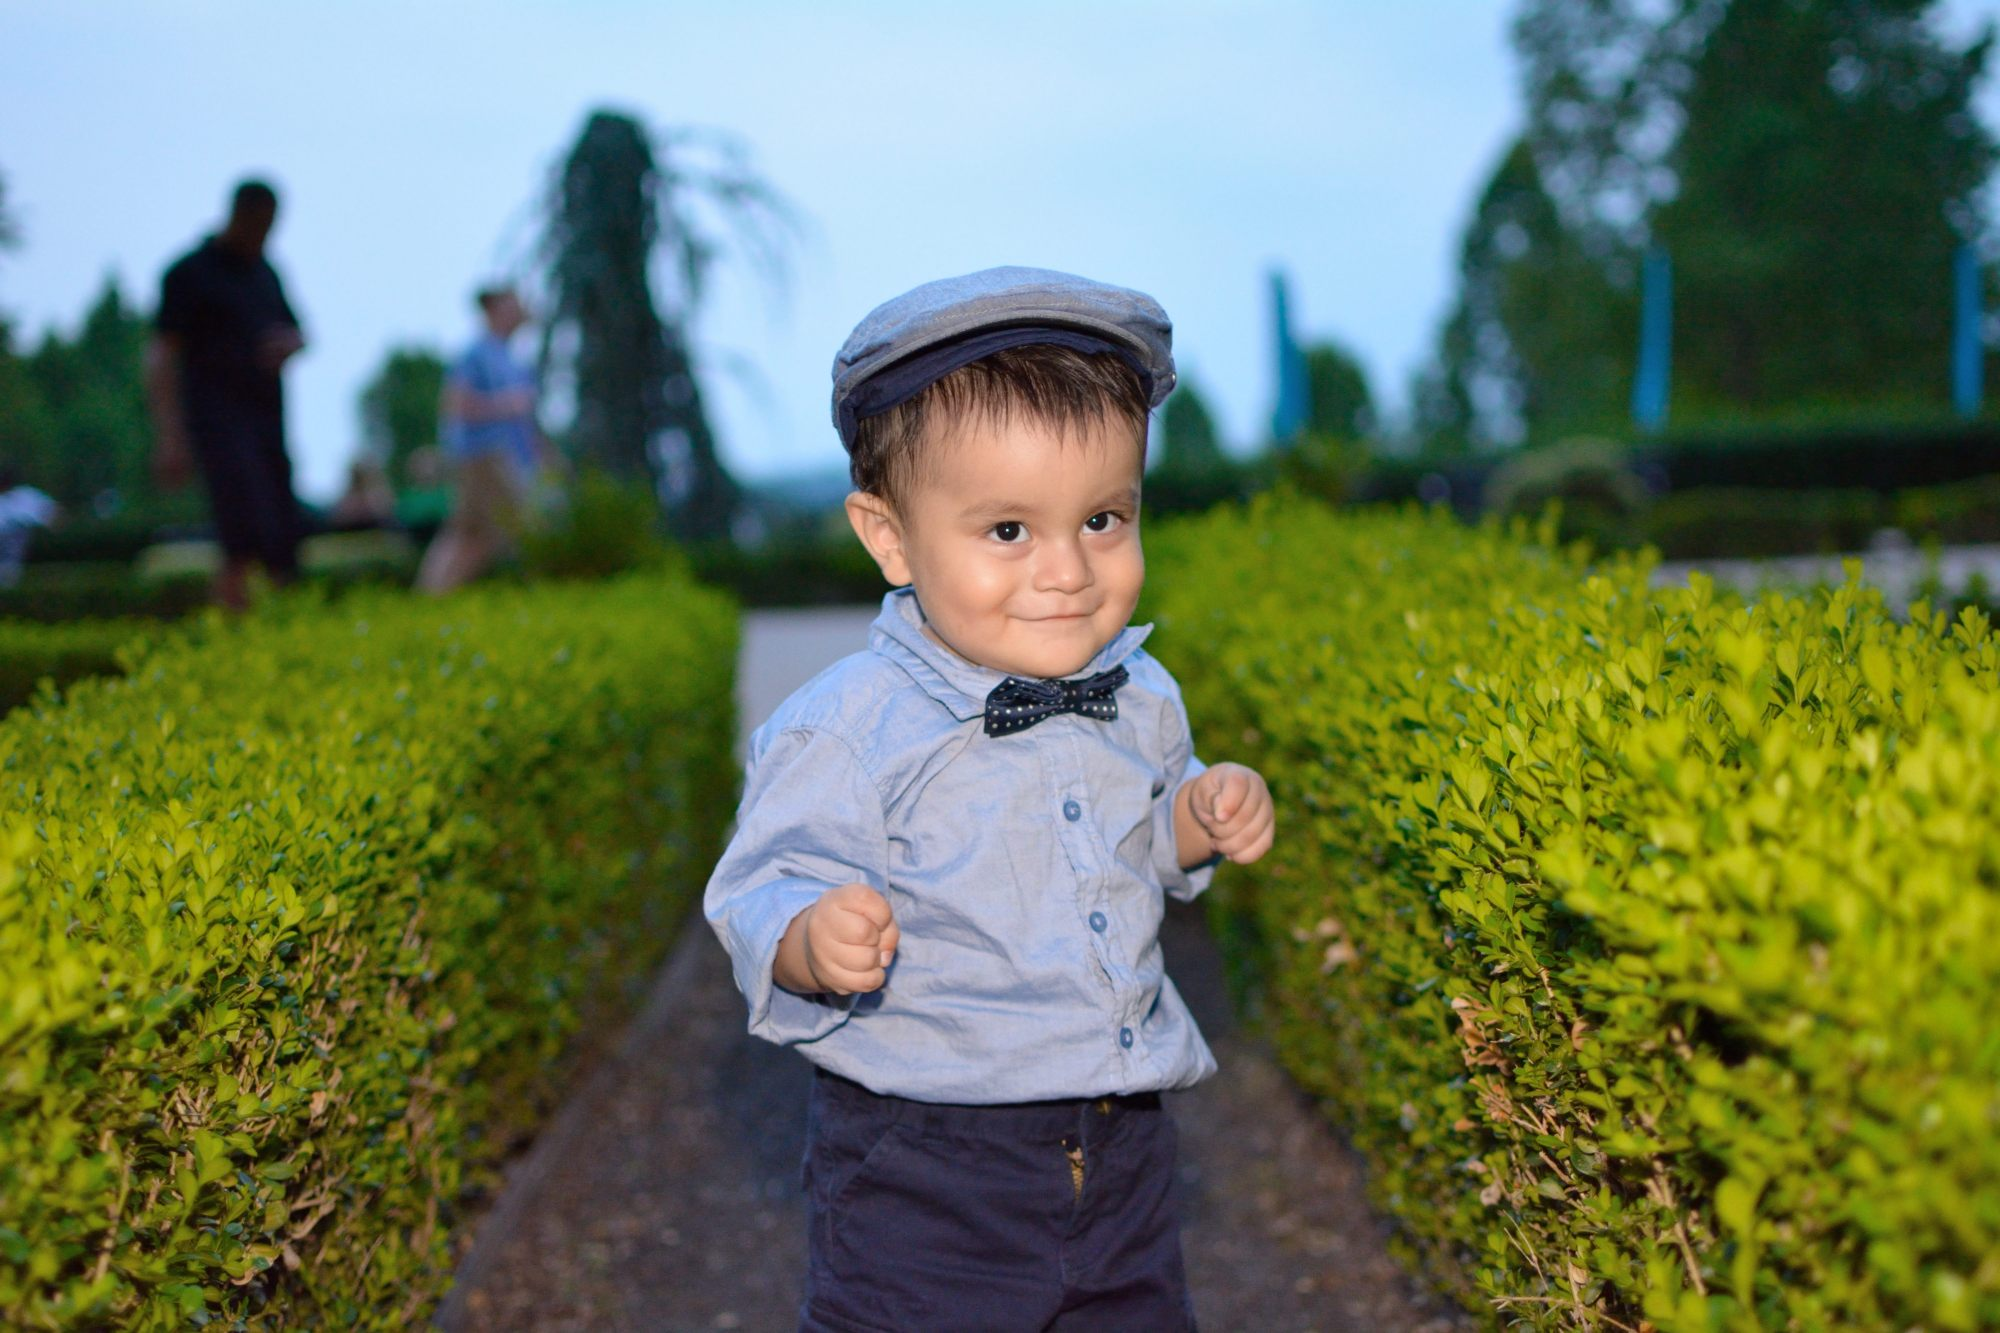 tomas hric photography offers stunning family photography, little cute boy portrait in ally of hedges